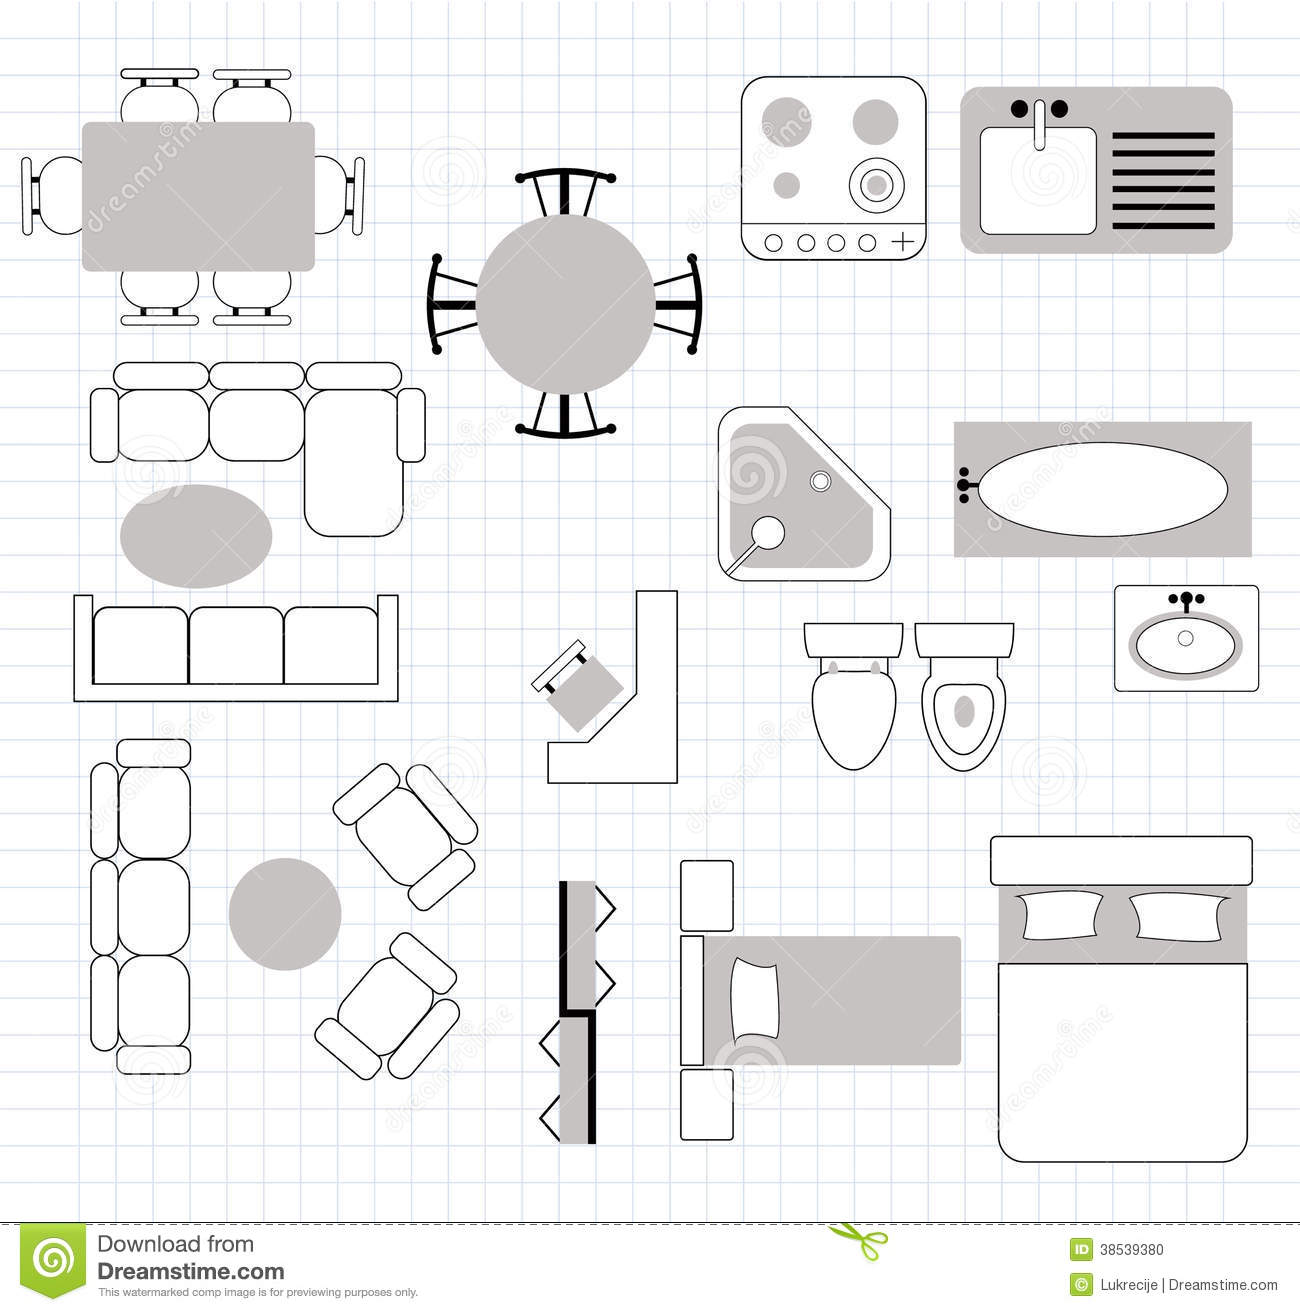 Clipart furniture floor plan clipground for How to make a blueprint online